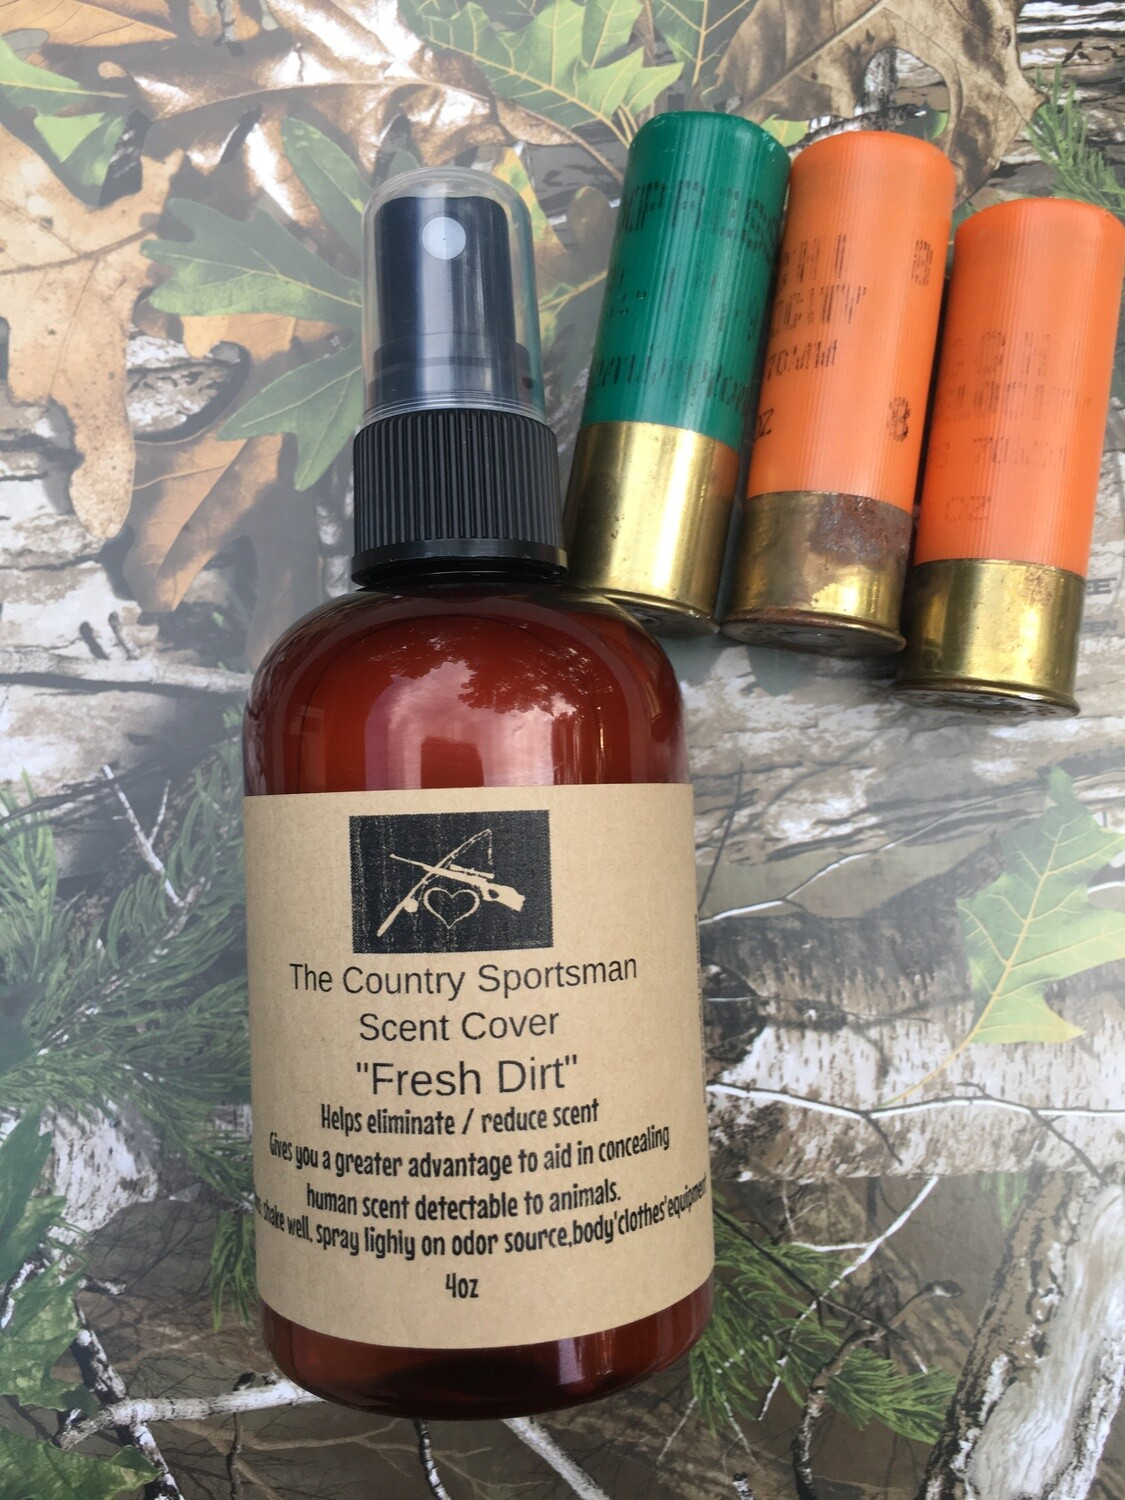 The Country Sportsman Scent Cover